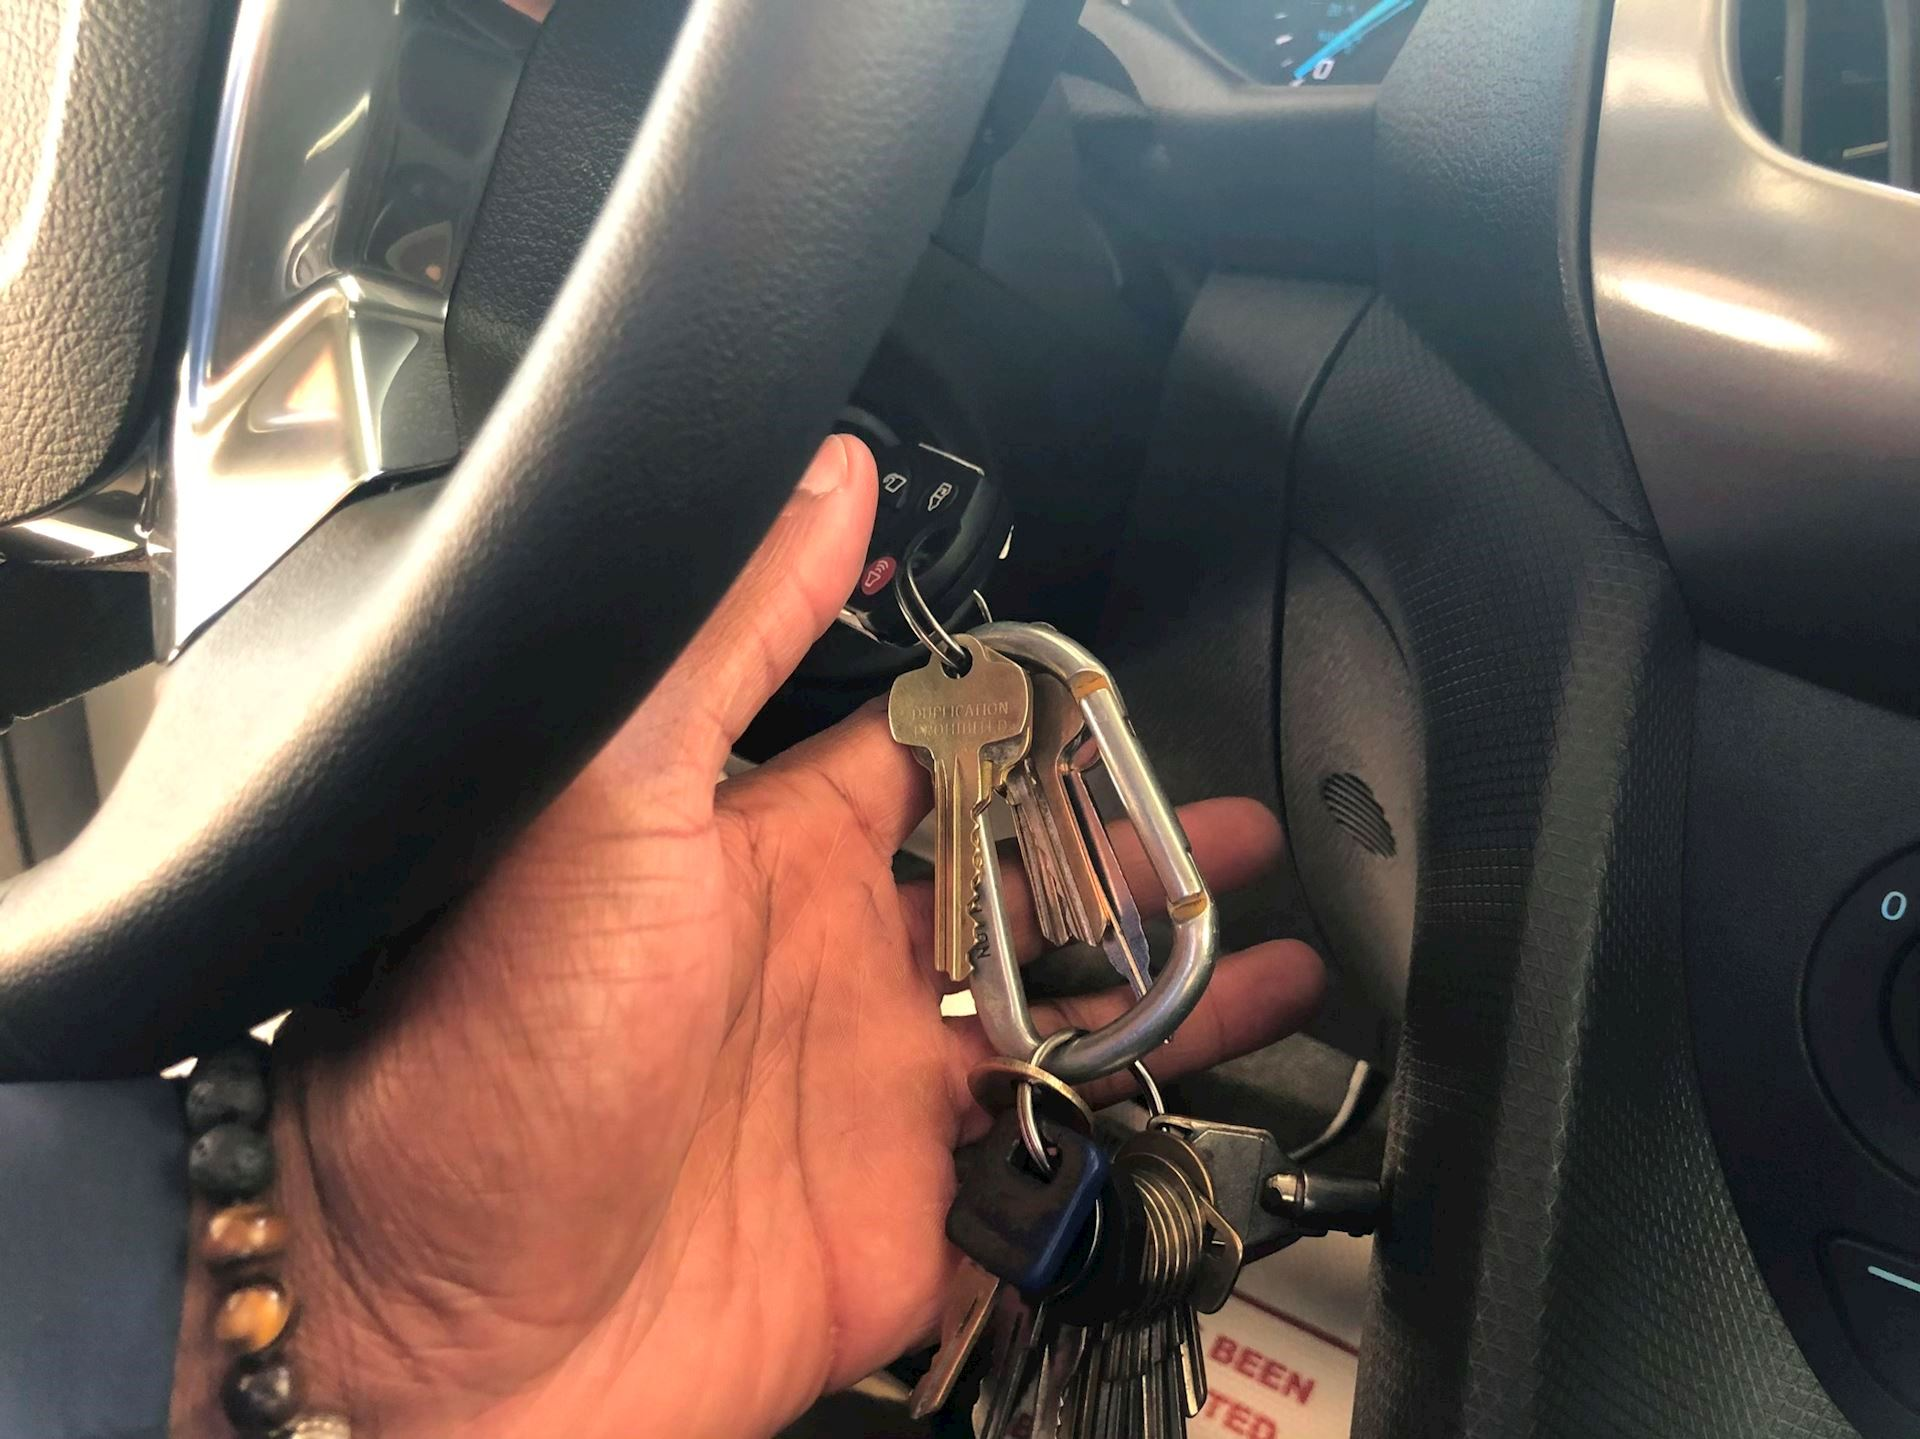 Why You Need To Lighten The Load On Your Car Keys